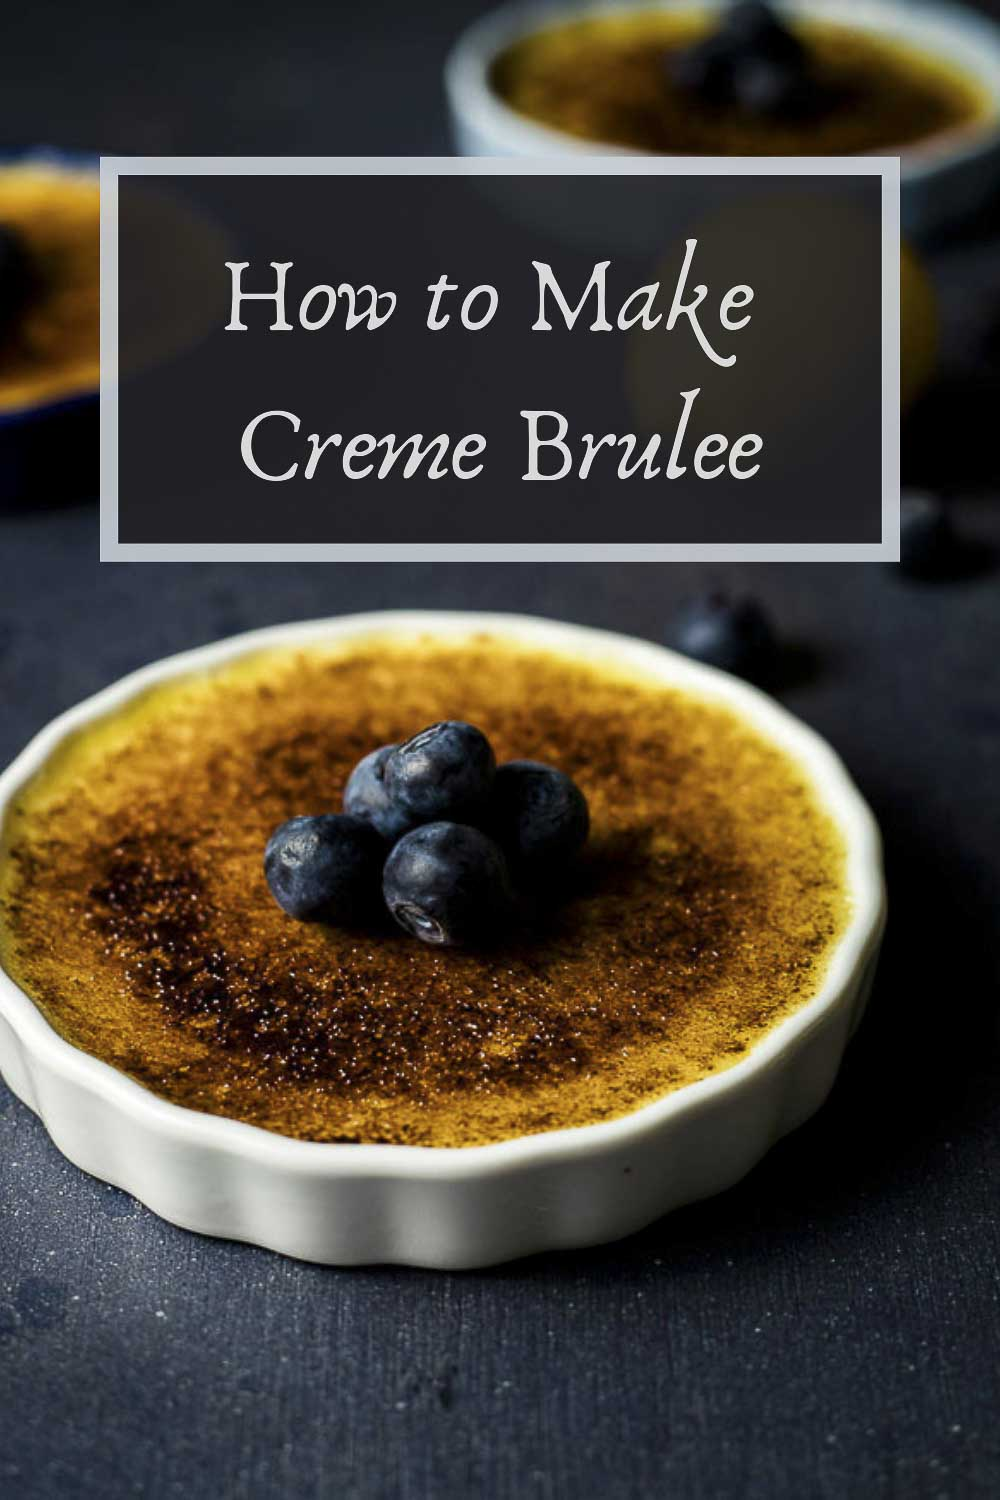 Step-by-step photos and instructions on how to make the perfect rich and creamy Creme Brulee with a thick caramelized sugar coating. Flavored with fresh Meyer lemon juice, this easy creme brulee recipe has the perfect lemony custard and crispy sugar topping. Ready in under an hour, this easy creme brulee is sure to impress! #wenthere8this #cremebrulee #lemoncustard #lemonbrulee